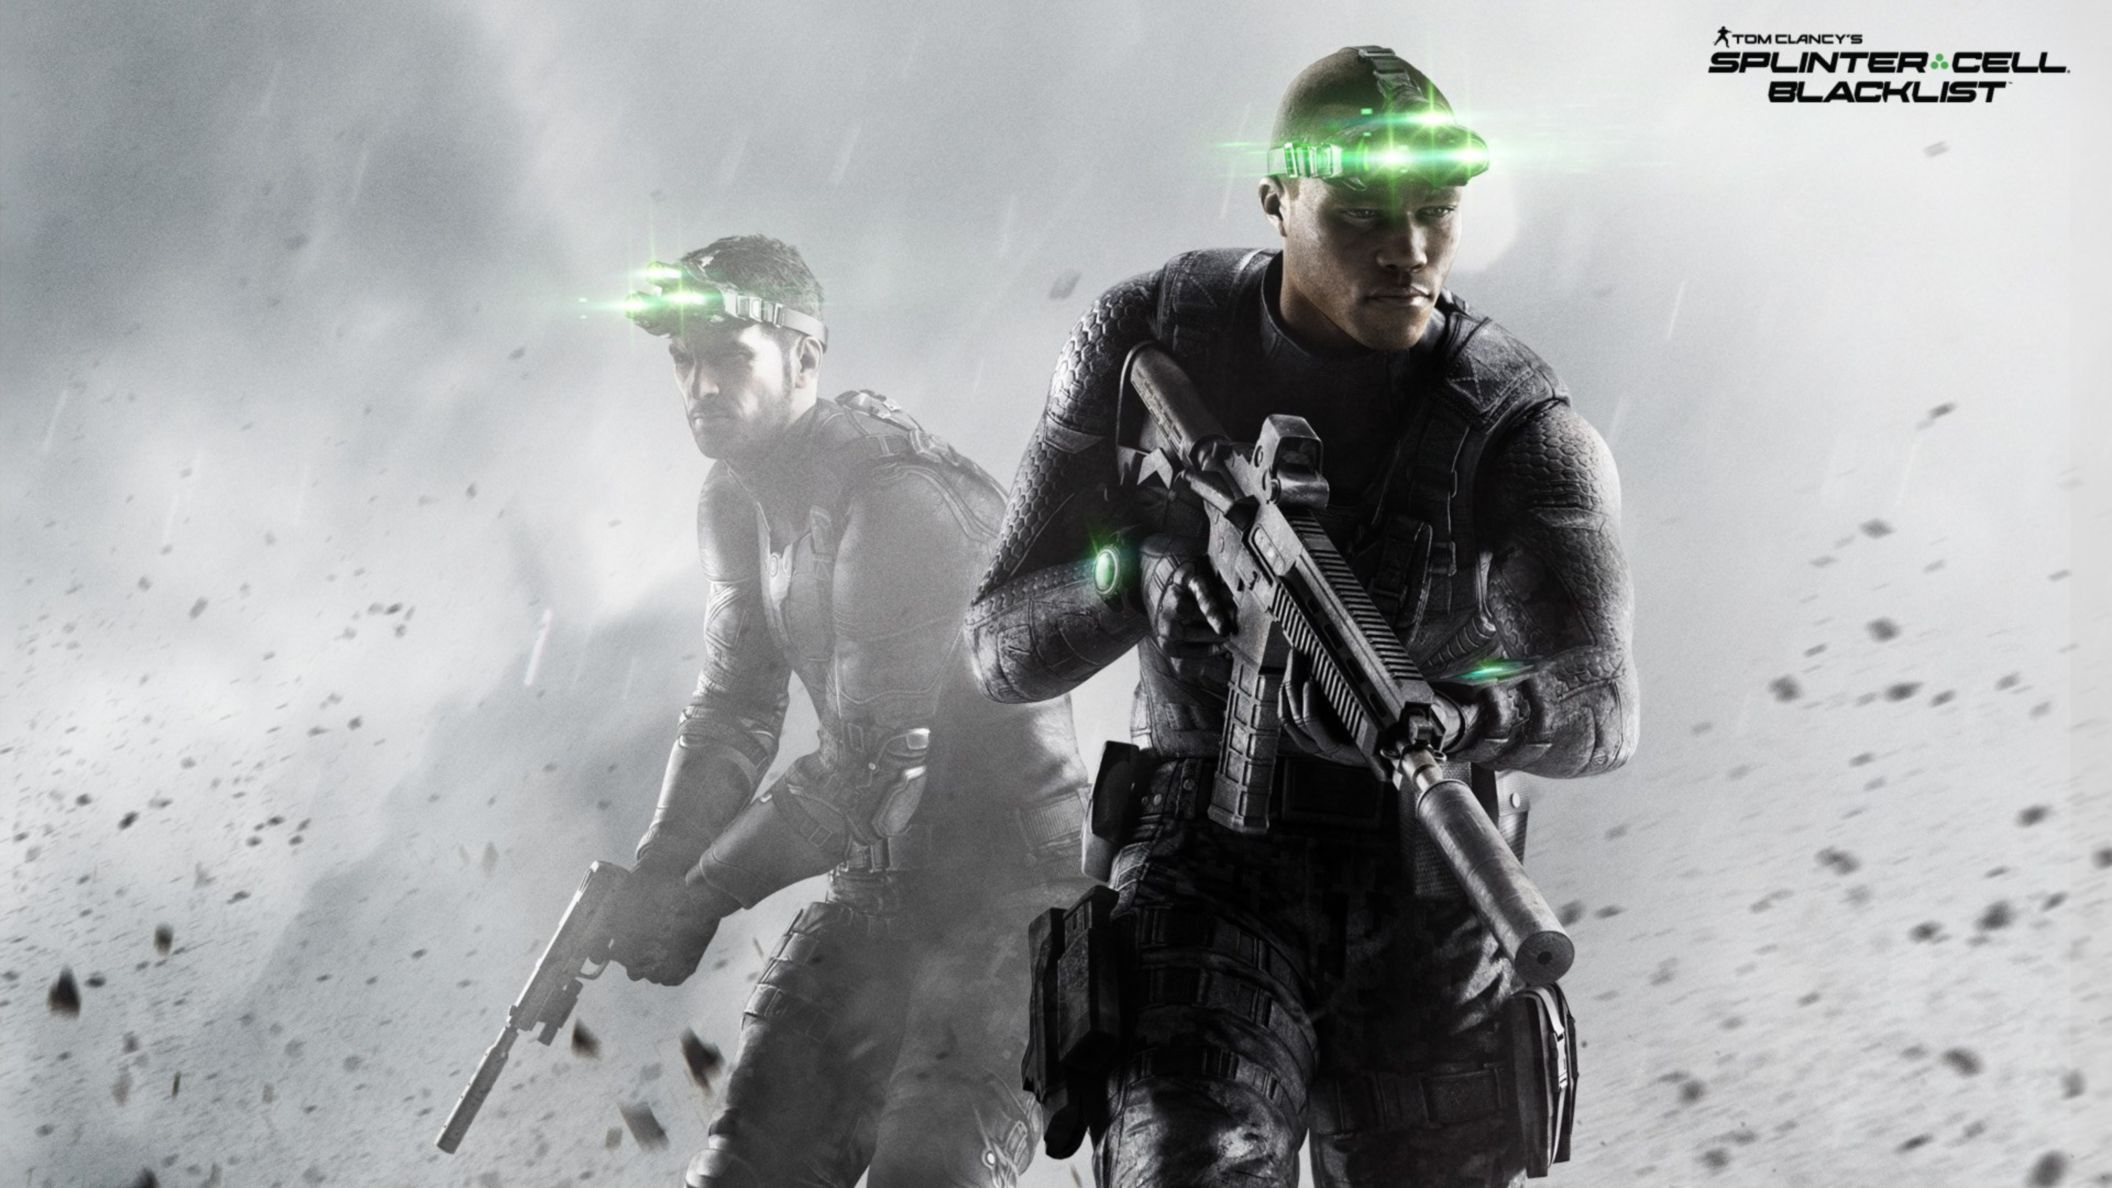 Download free HD 2013 Tom Clancys Splinter Cell Blacklist HD Wallpaper, image